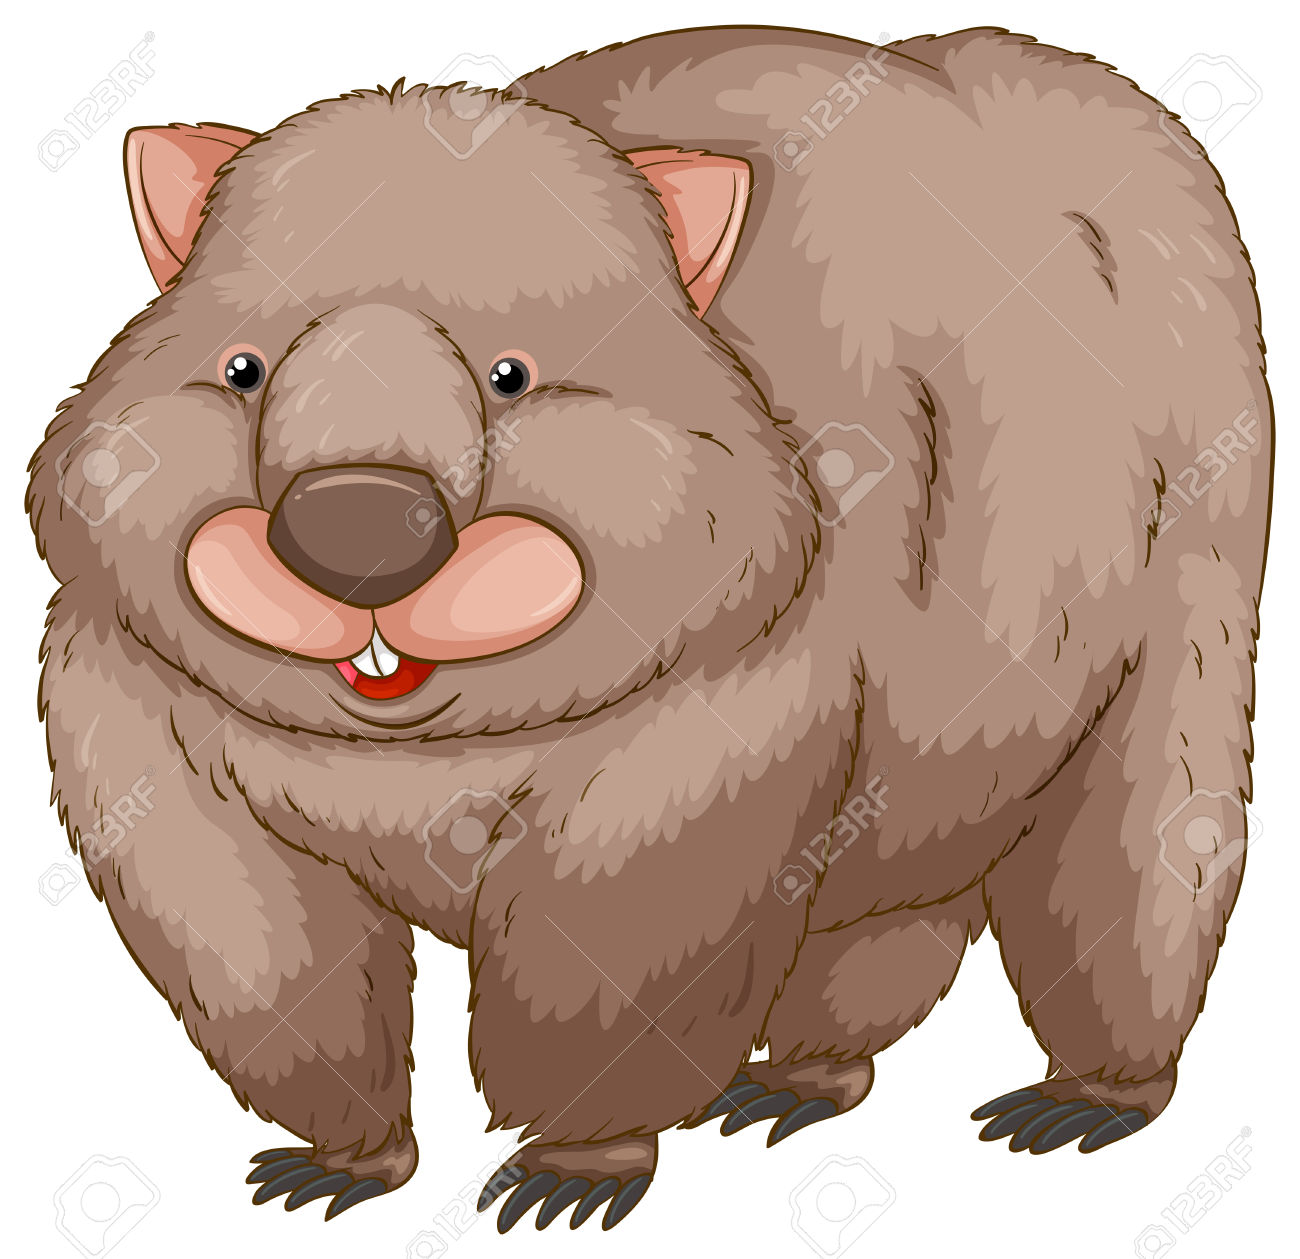 Wombat clipart #10, Download drawings